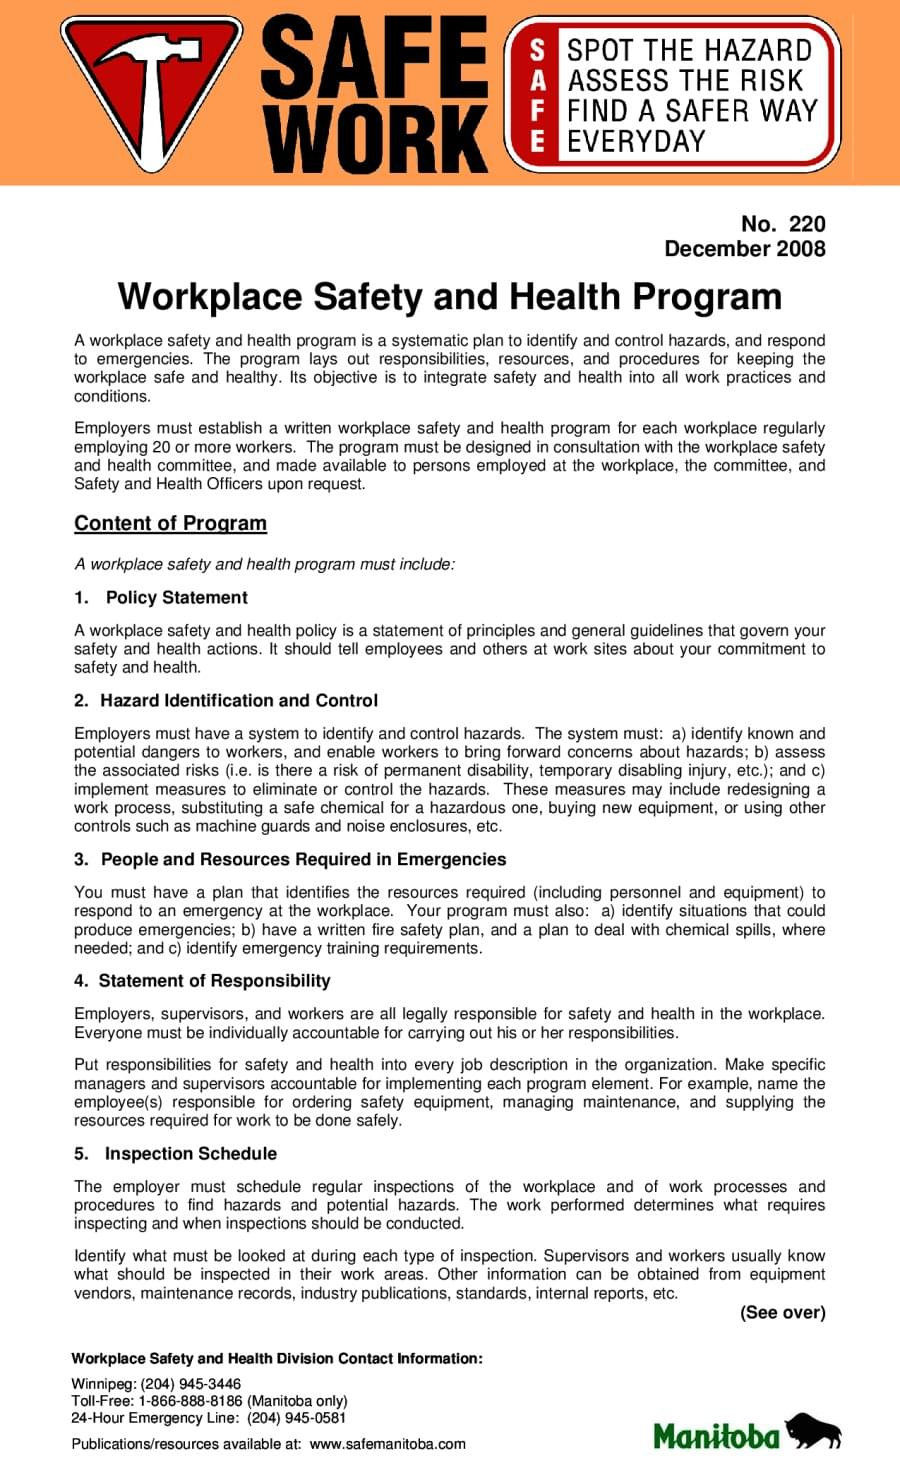 workplace safety and health programs